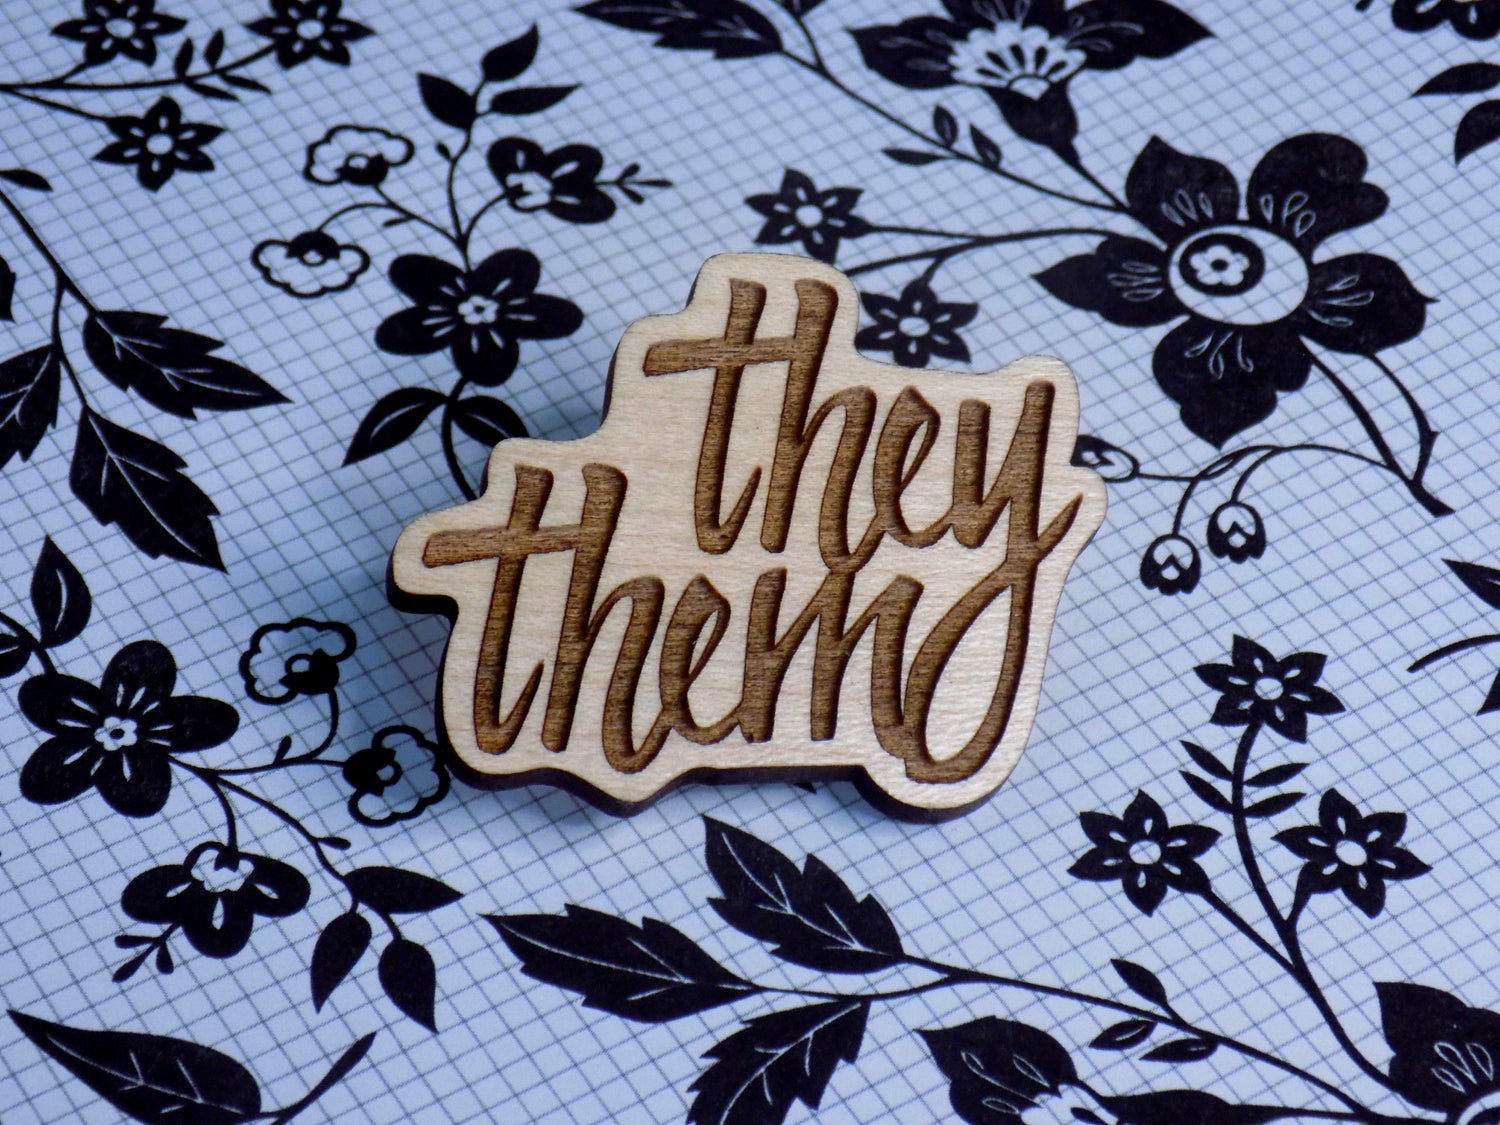 Maple Hardwood Pronoun Pin - They/Them